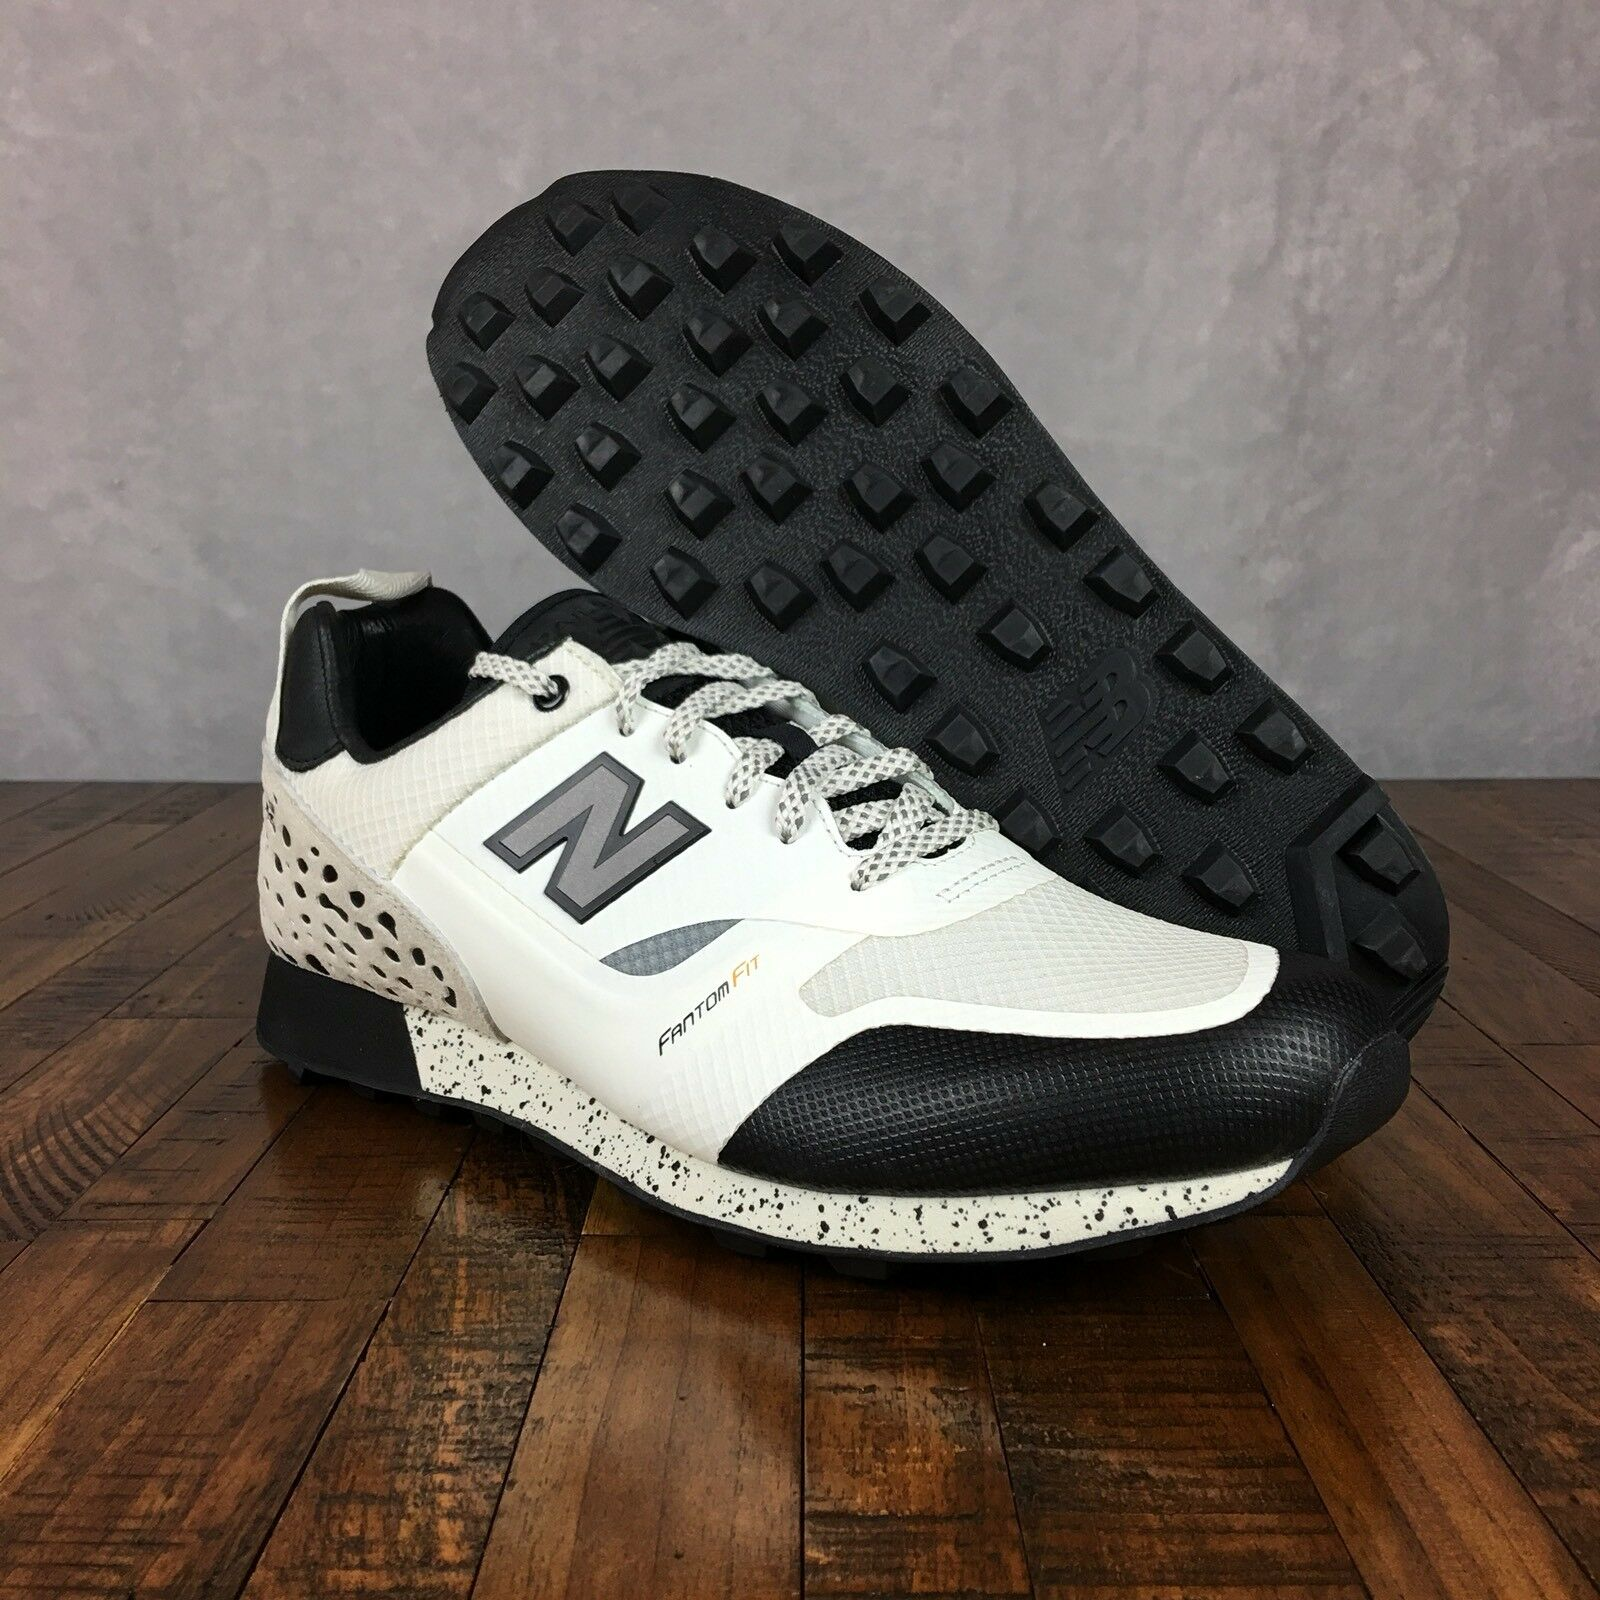 New Balance X Undefeated Trailbuster Sneakers Fantom Fit TBTFUD Mens Size 12